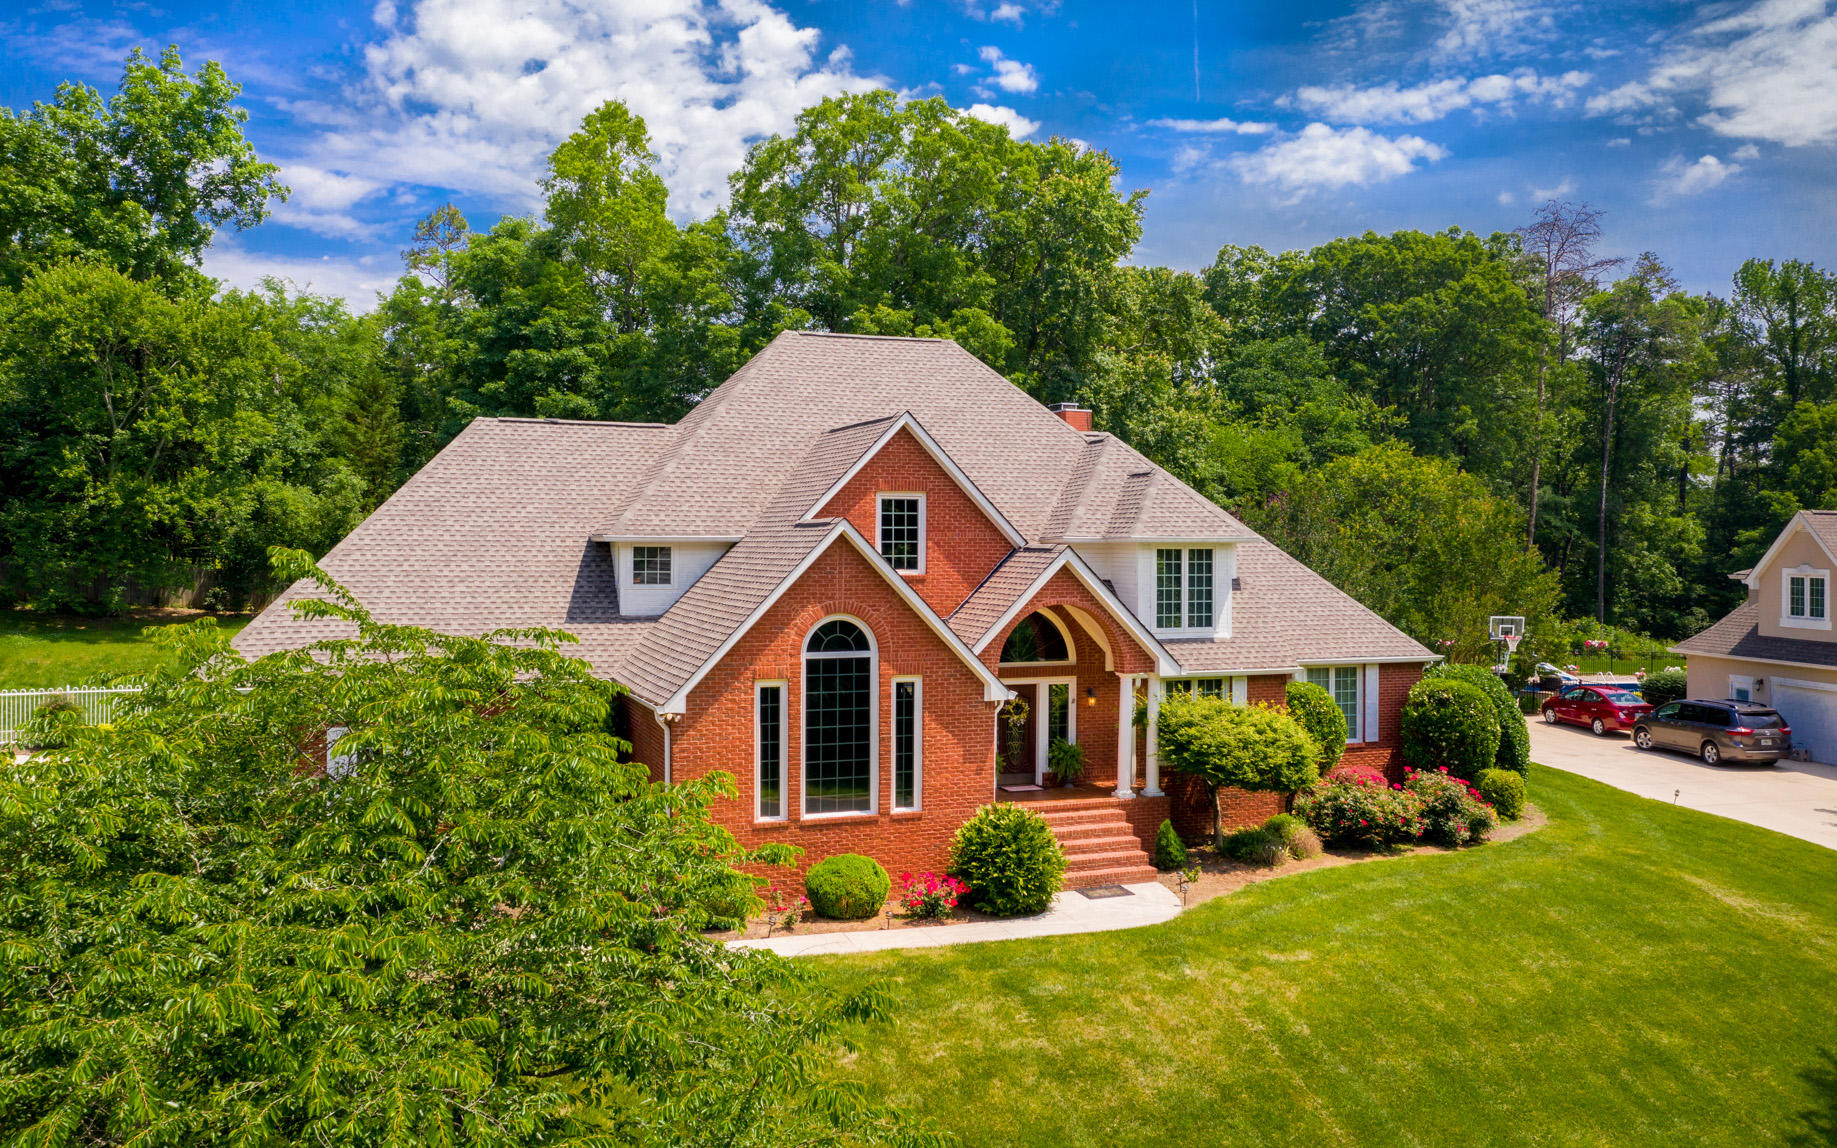 671 Nw Paragon Pkwy, Cleveland, TN 37312